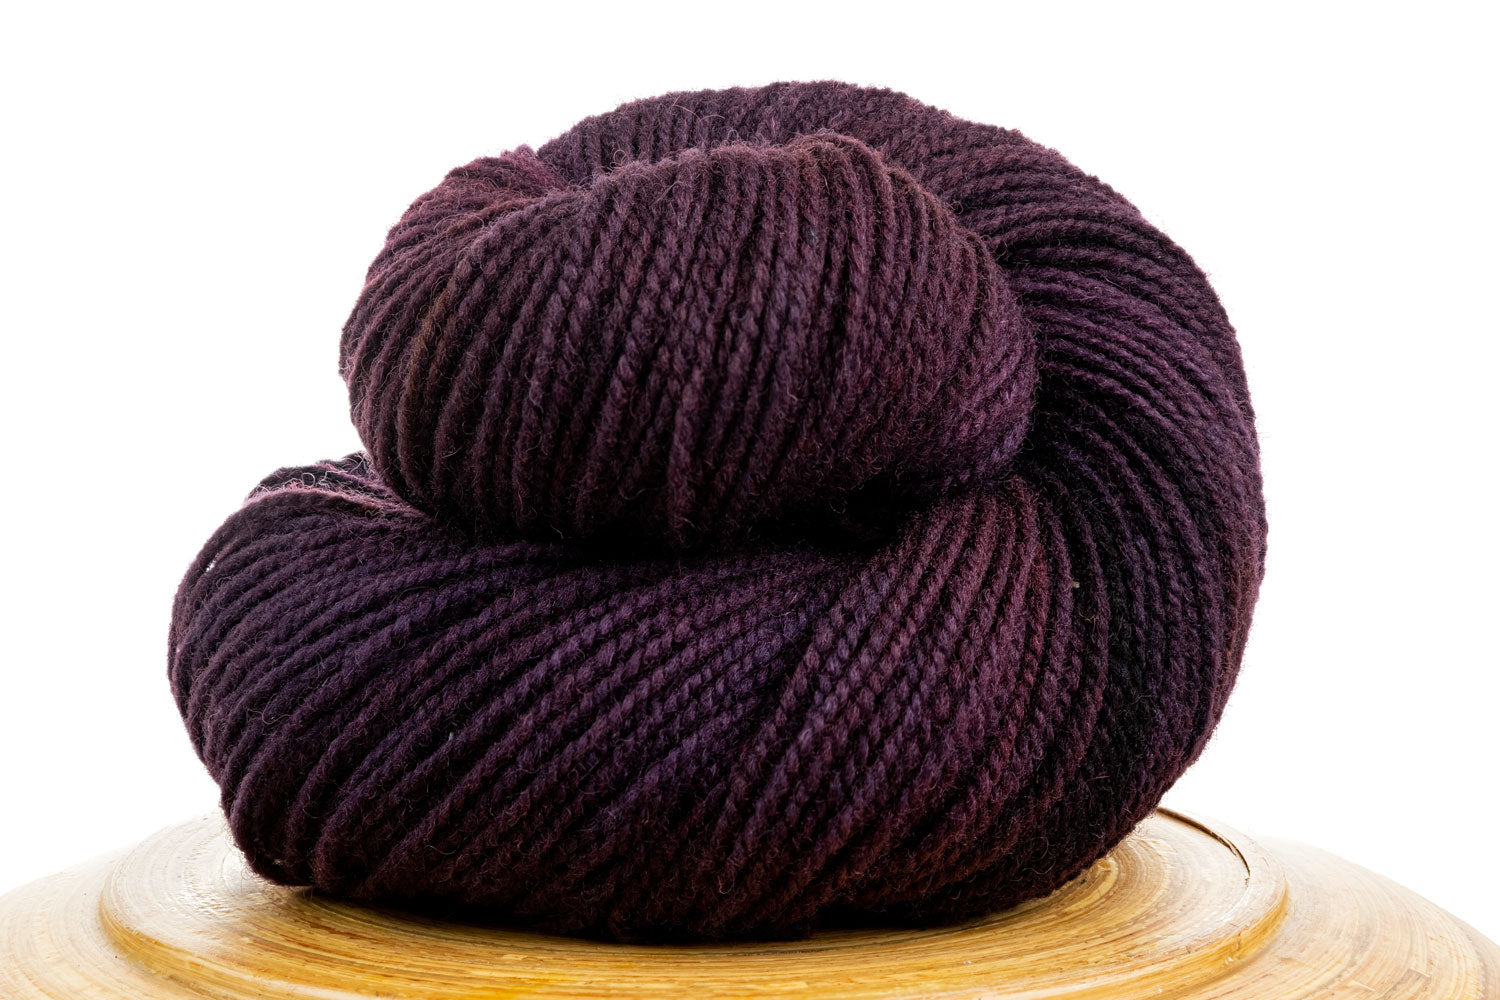 Winfield Canadian hand-dyed wool yarn in Northern Sky, a dark purple